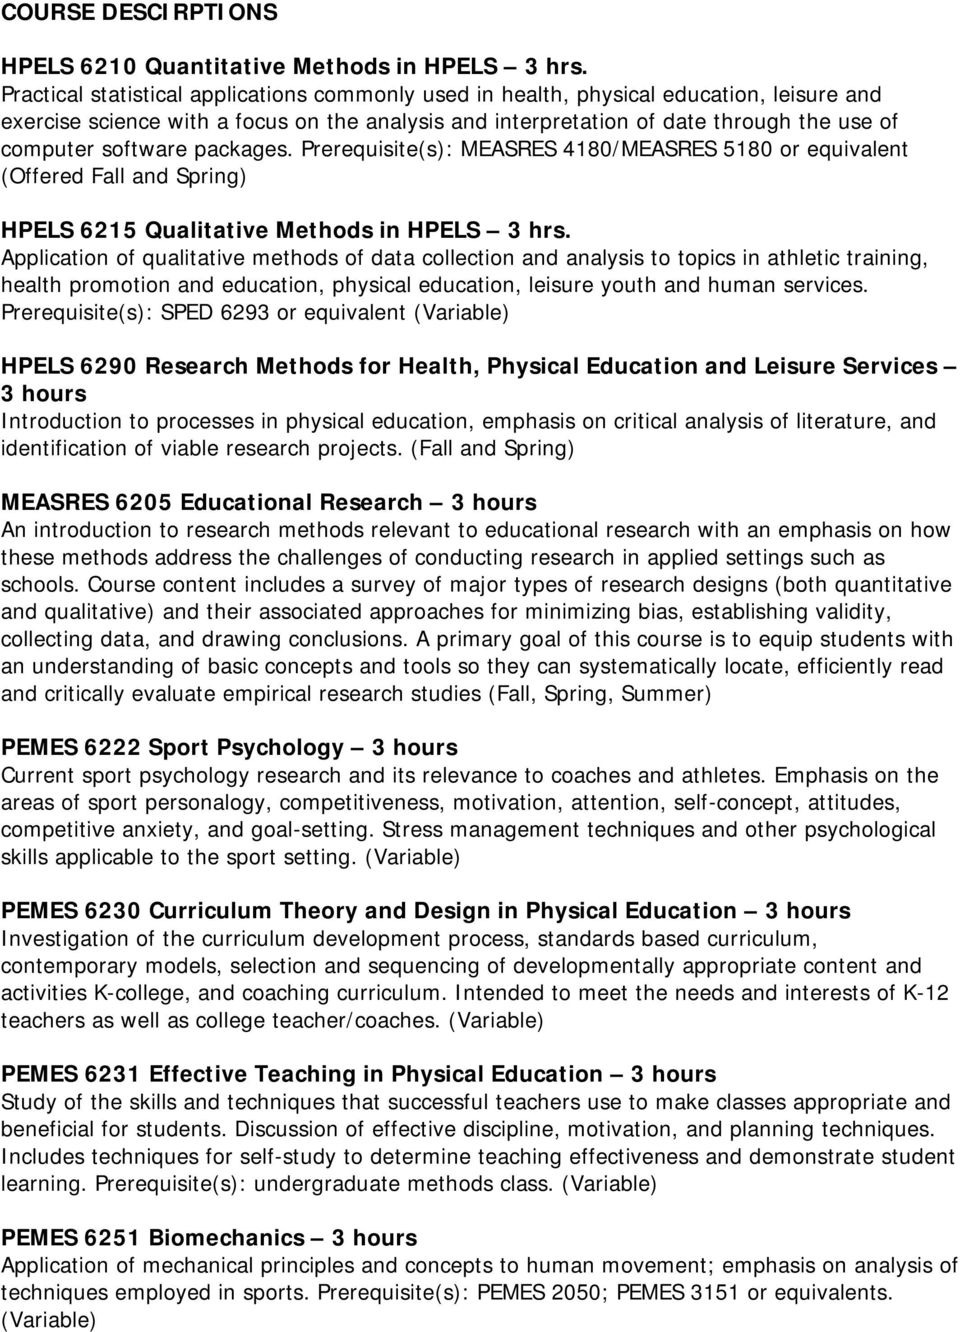 software packages. Prerequisite(s): MEASRES 4180/MEASRES 5180 or equivalent (Offered Fall and Spring) HPELS 6215 Qualitative Methods in HPELS 3 hrs.